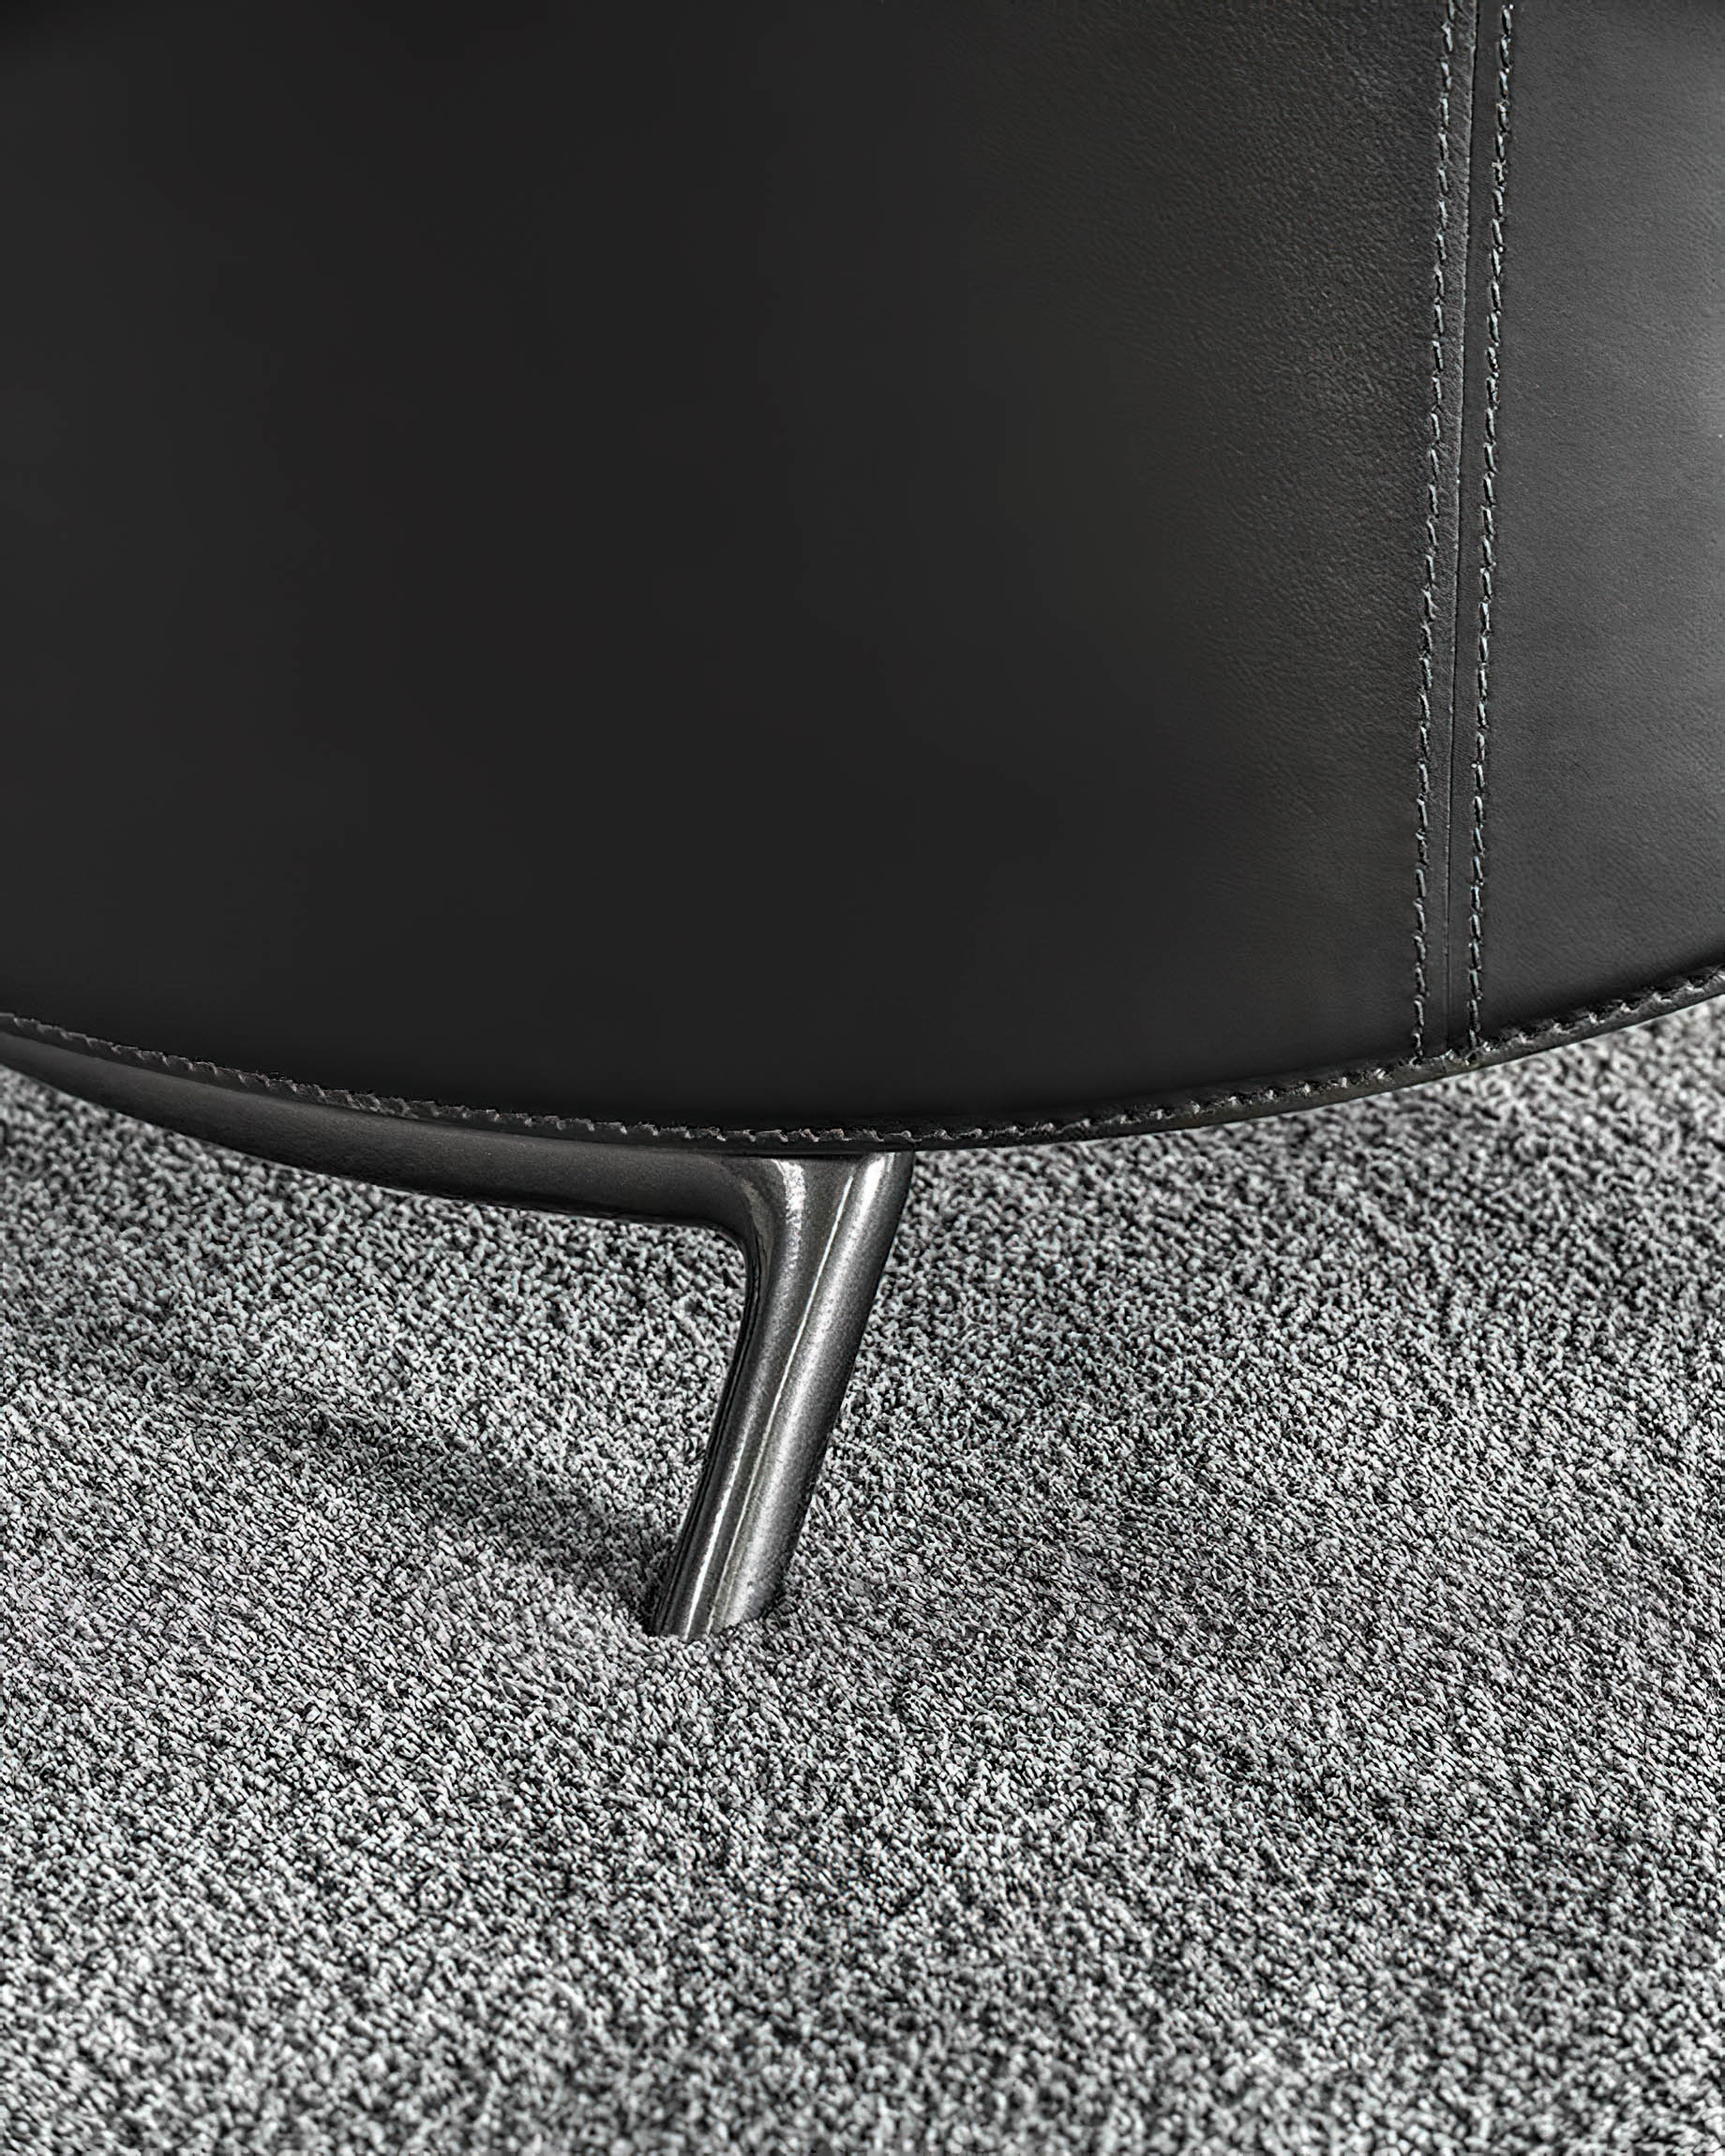 Angie Armchair Collection a Sculptural Gesture by Minotti, Italy – GamFratesi